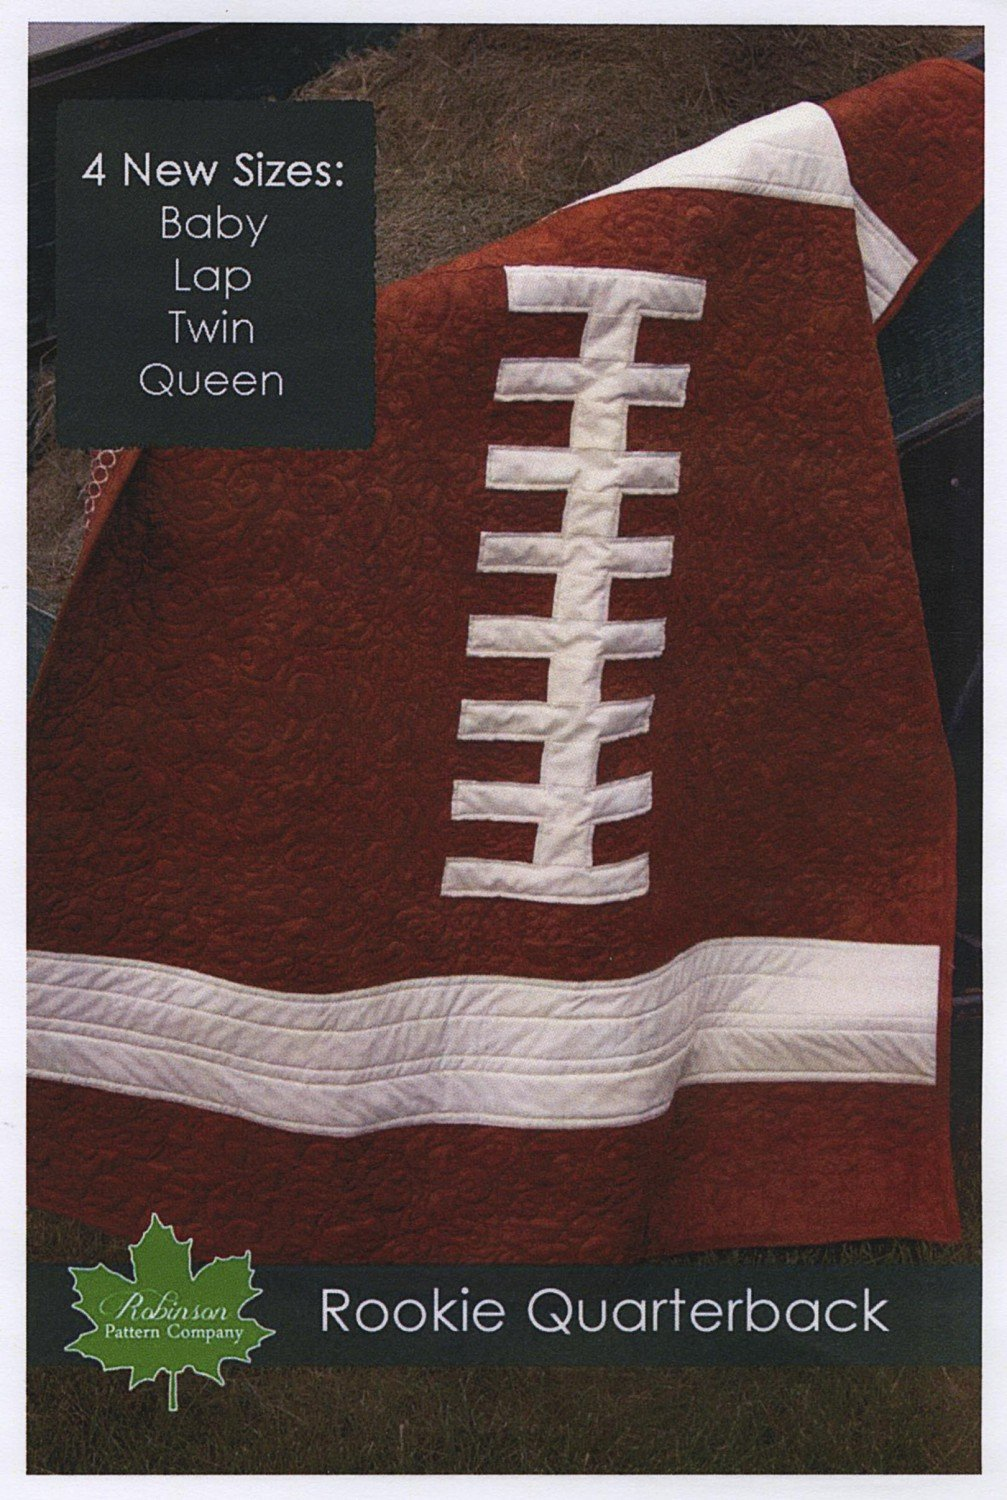 Rookie Quarterback by Robinson Pattern Company